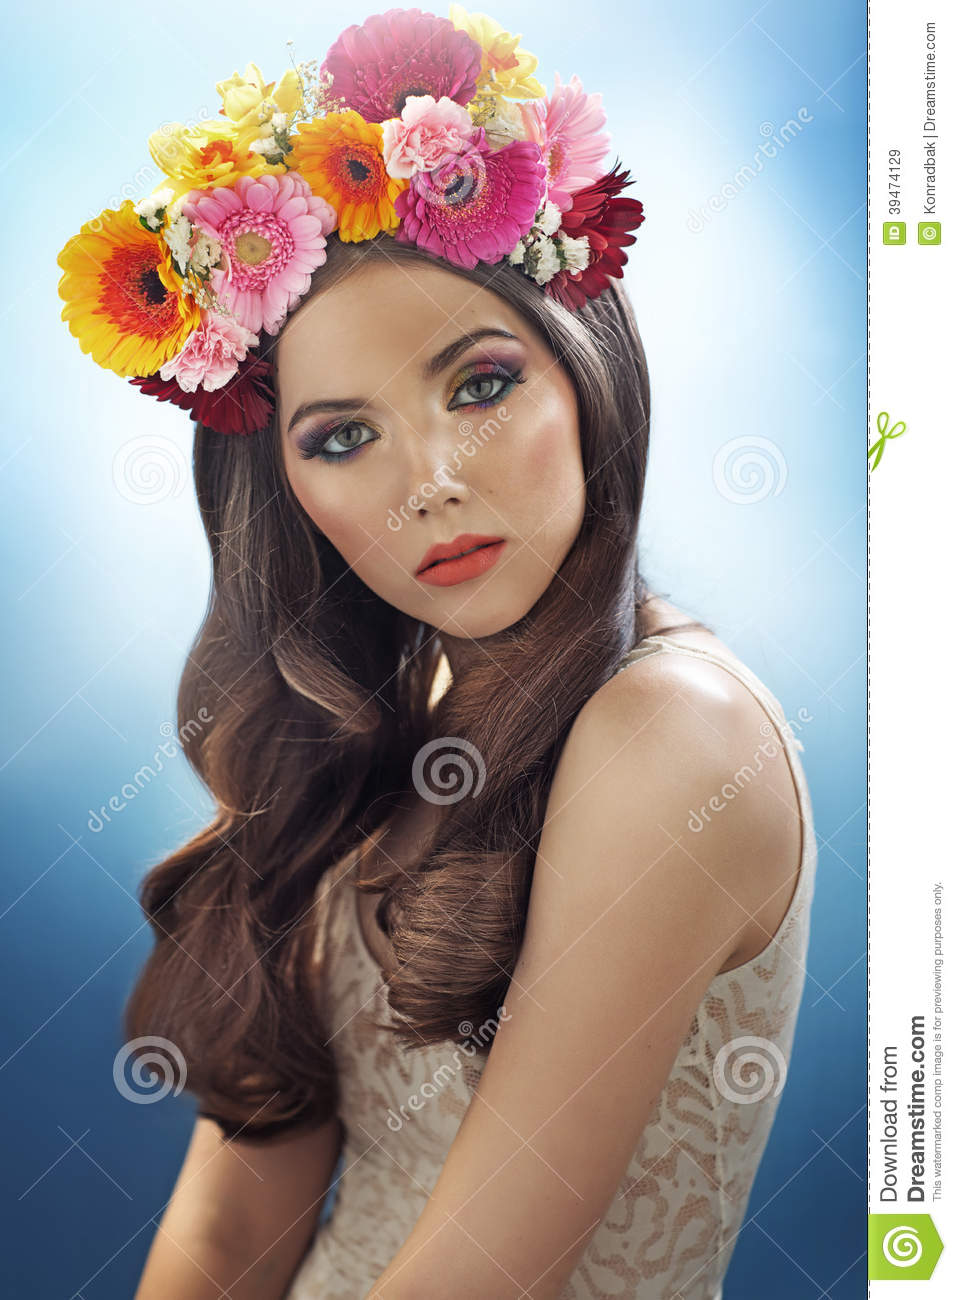 Young Pretty Girl With The Flower Hat Stock Image - Image of ... 2a62467335e